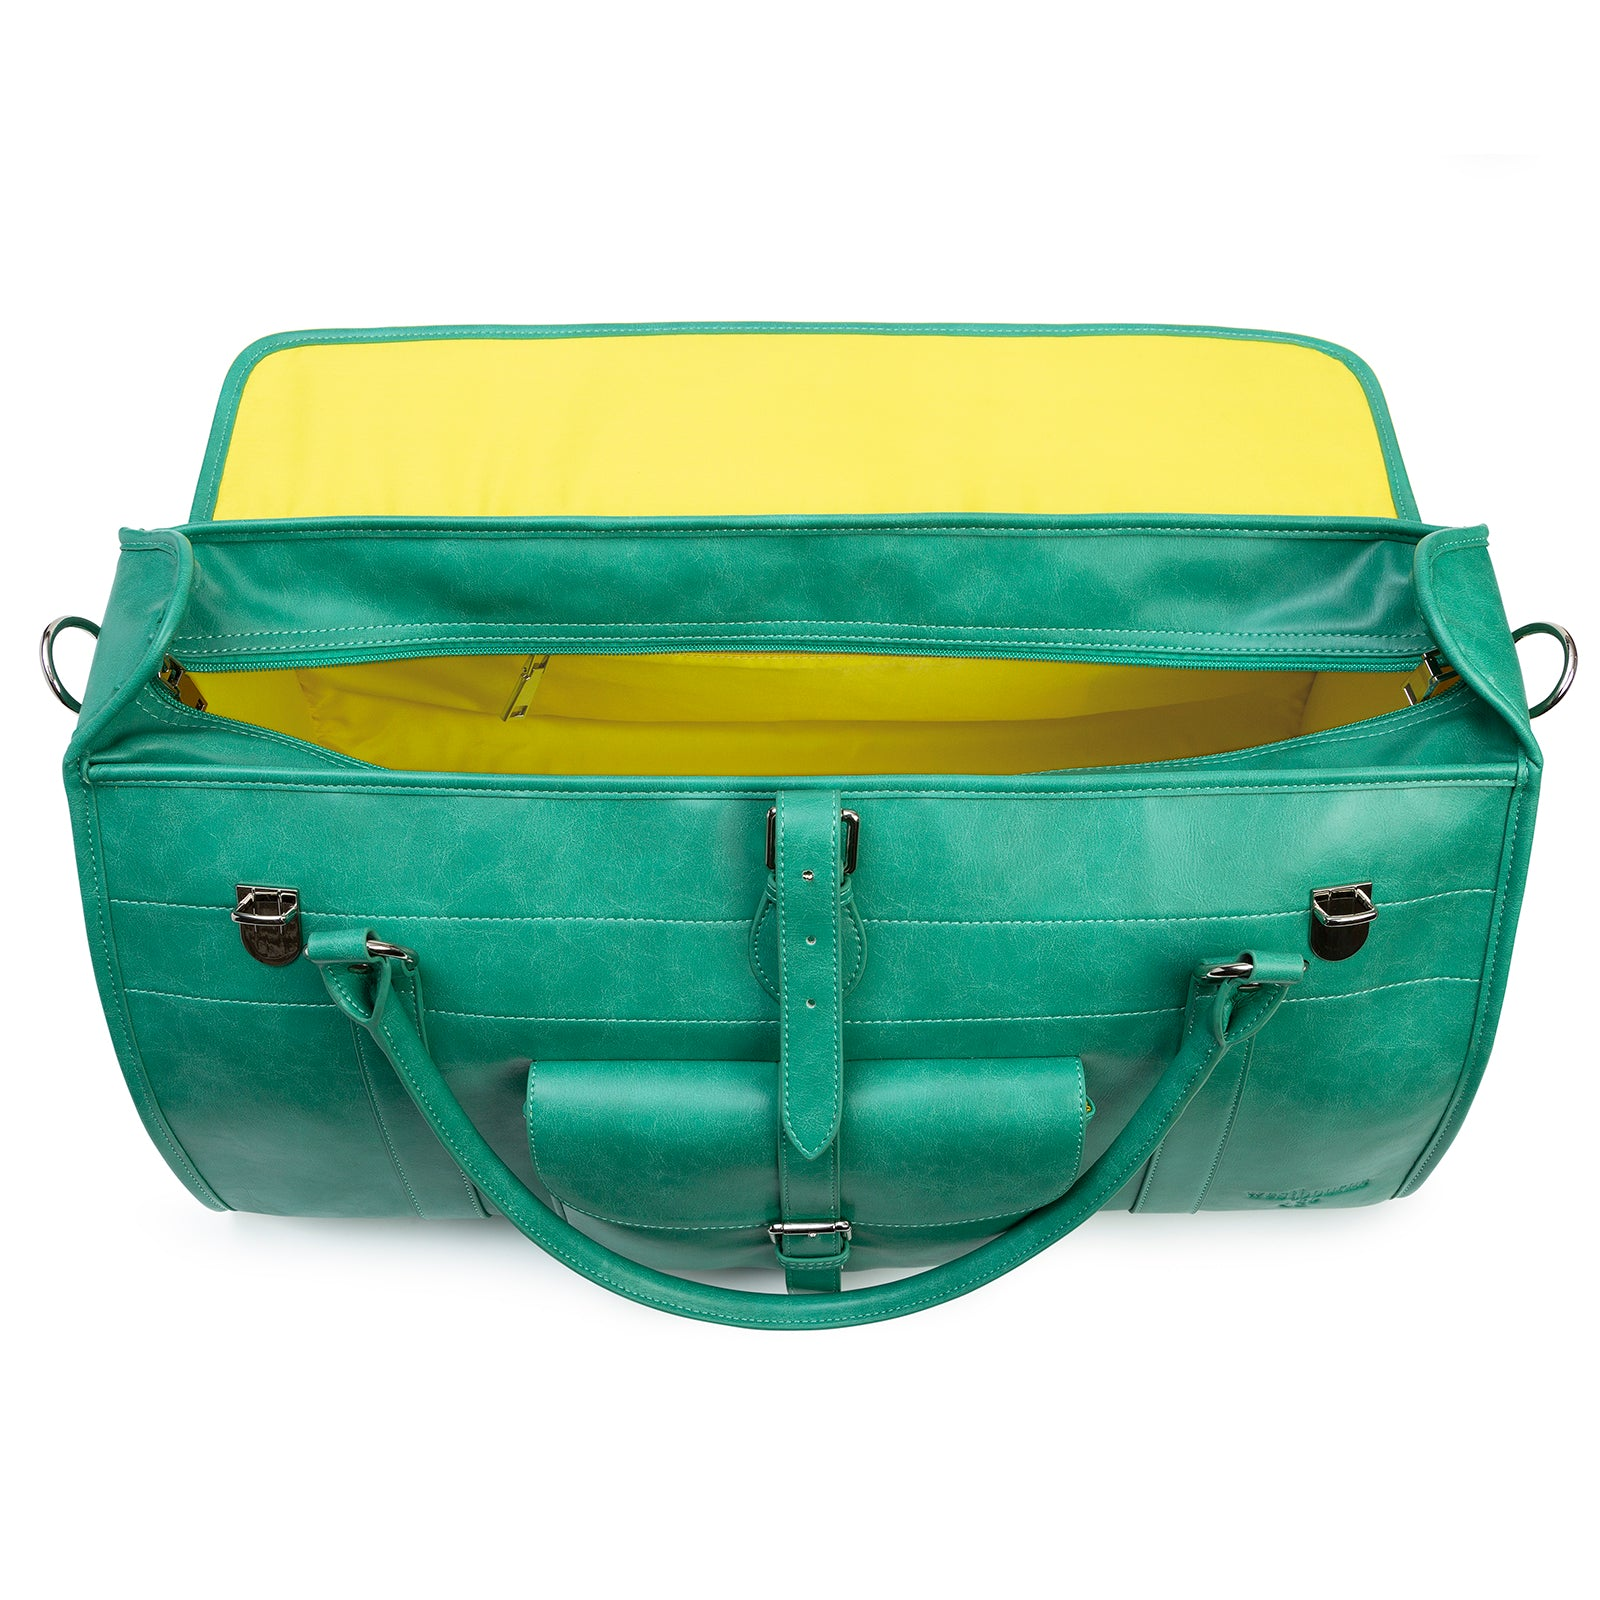 gloucester mint green travel bag